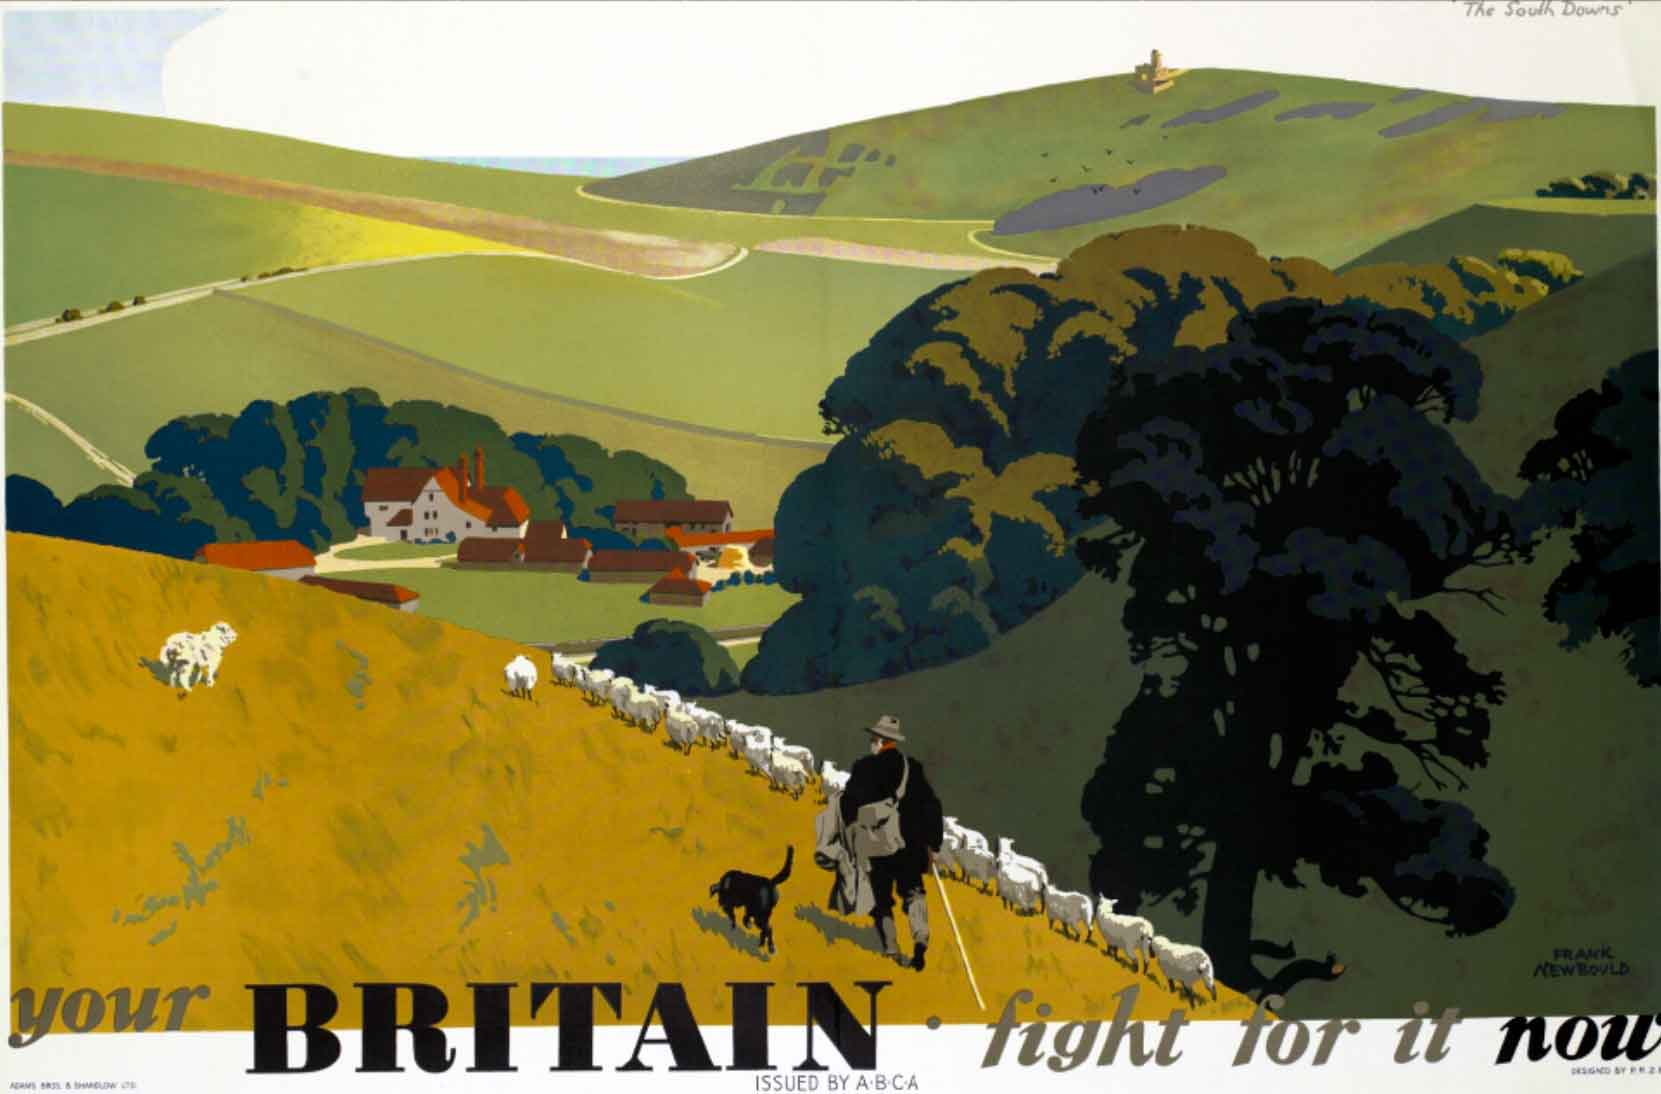 Frank_Newbould_-_Your_Britain_poster_during_WW2